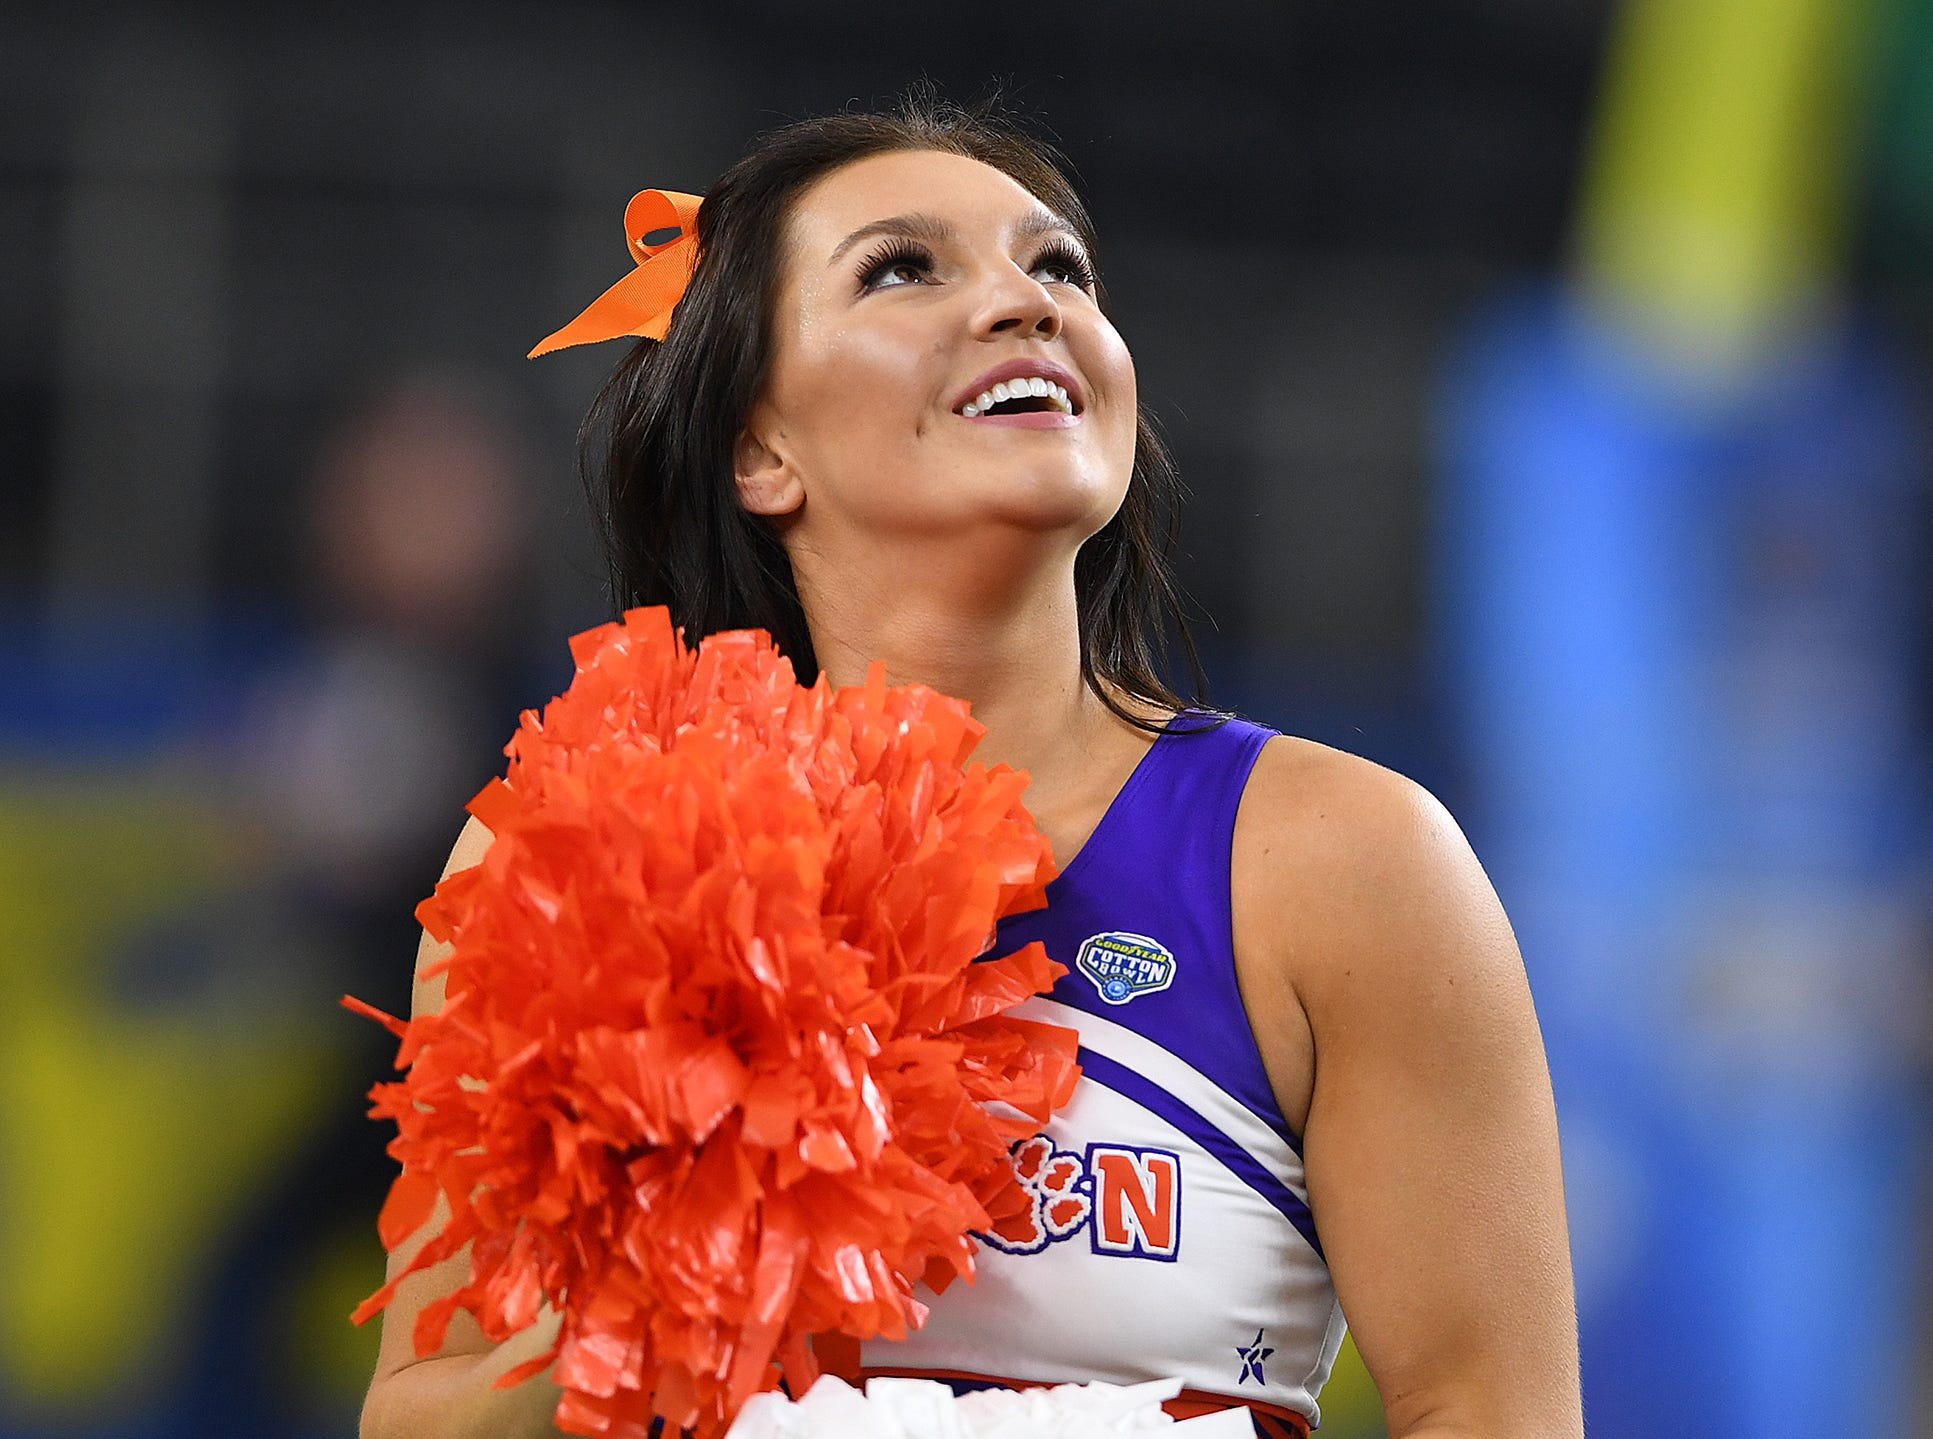 Clemson cheerleaders during pregame of the Goodyear Cotton Bowl at AT&T stadium in Arlington, TX Saturday, December 29, 2018.